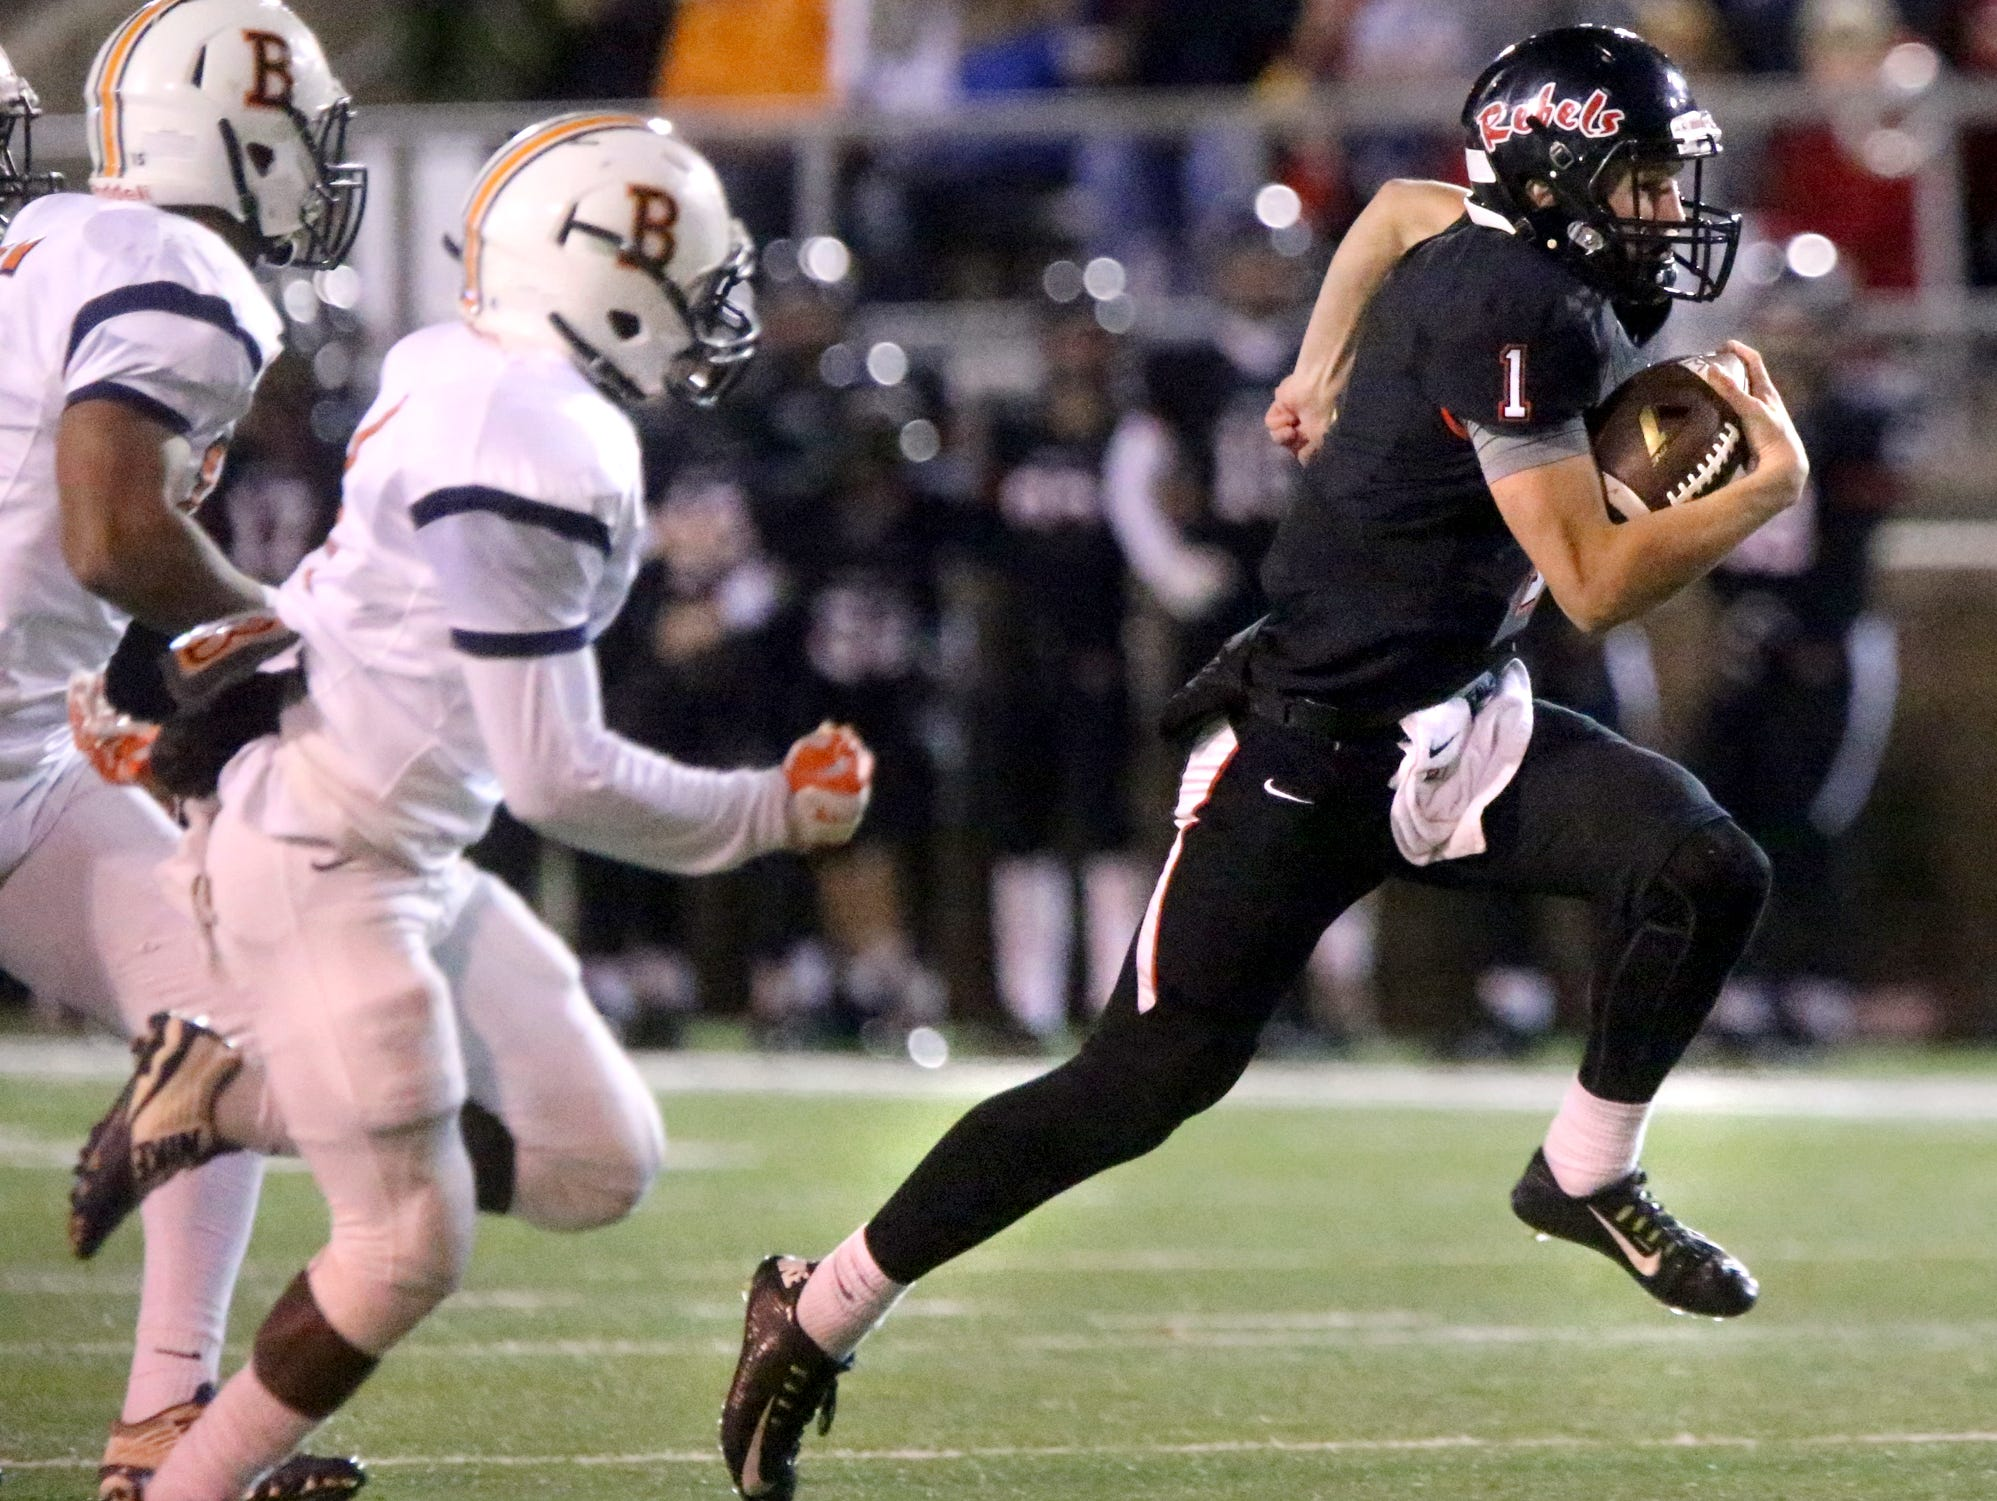 Maryville's quarterback Dylan Hopkins (1) runs the ball during the quarterfinal game against Blackman, at Maryville, on Friday, Nov. 20, 2015.